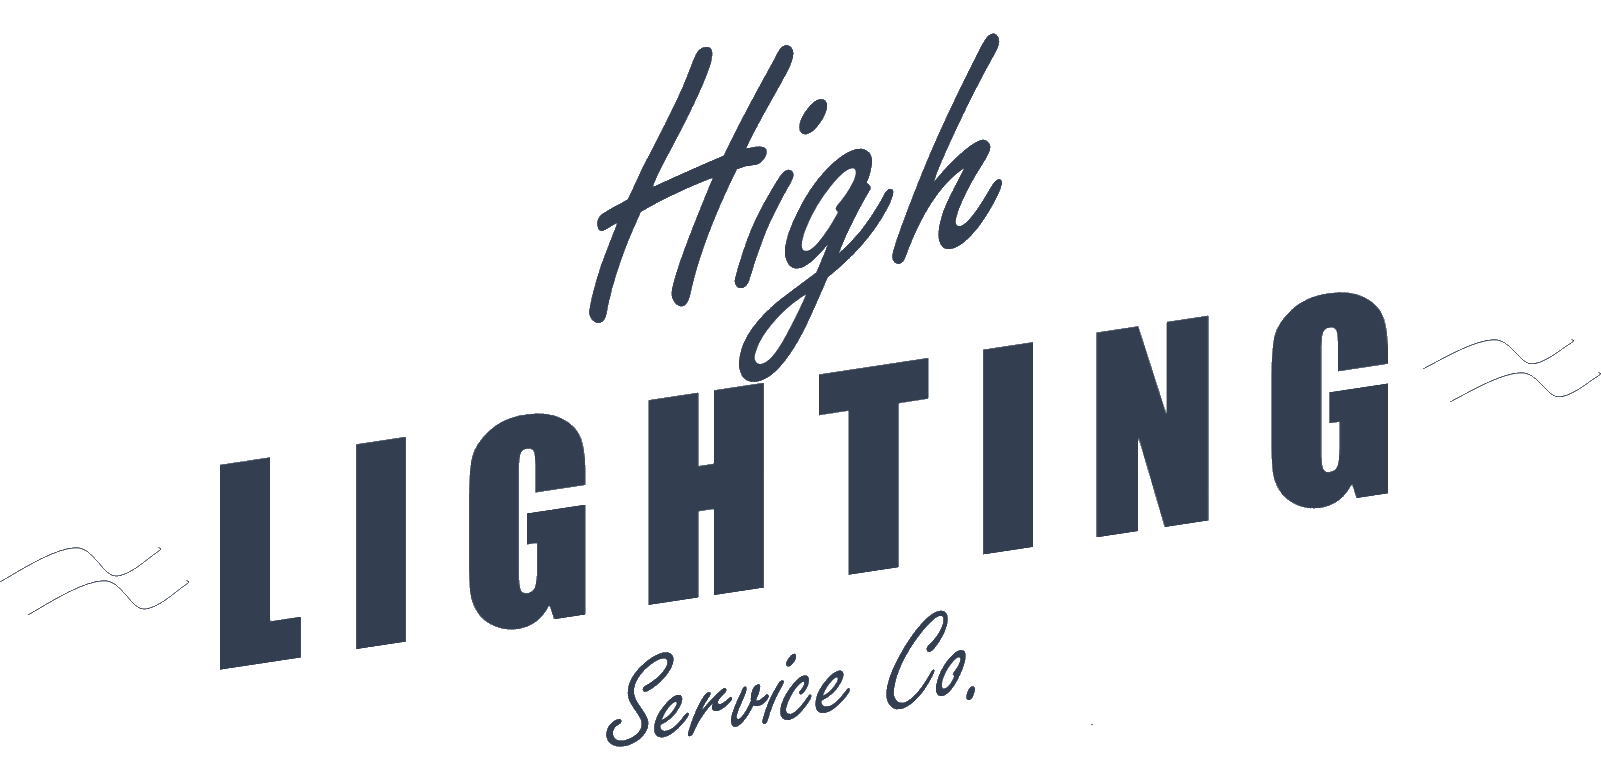 High Lighting Service Co.